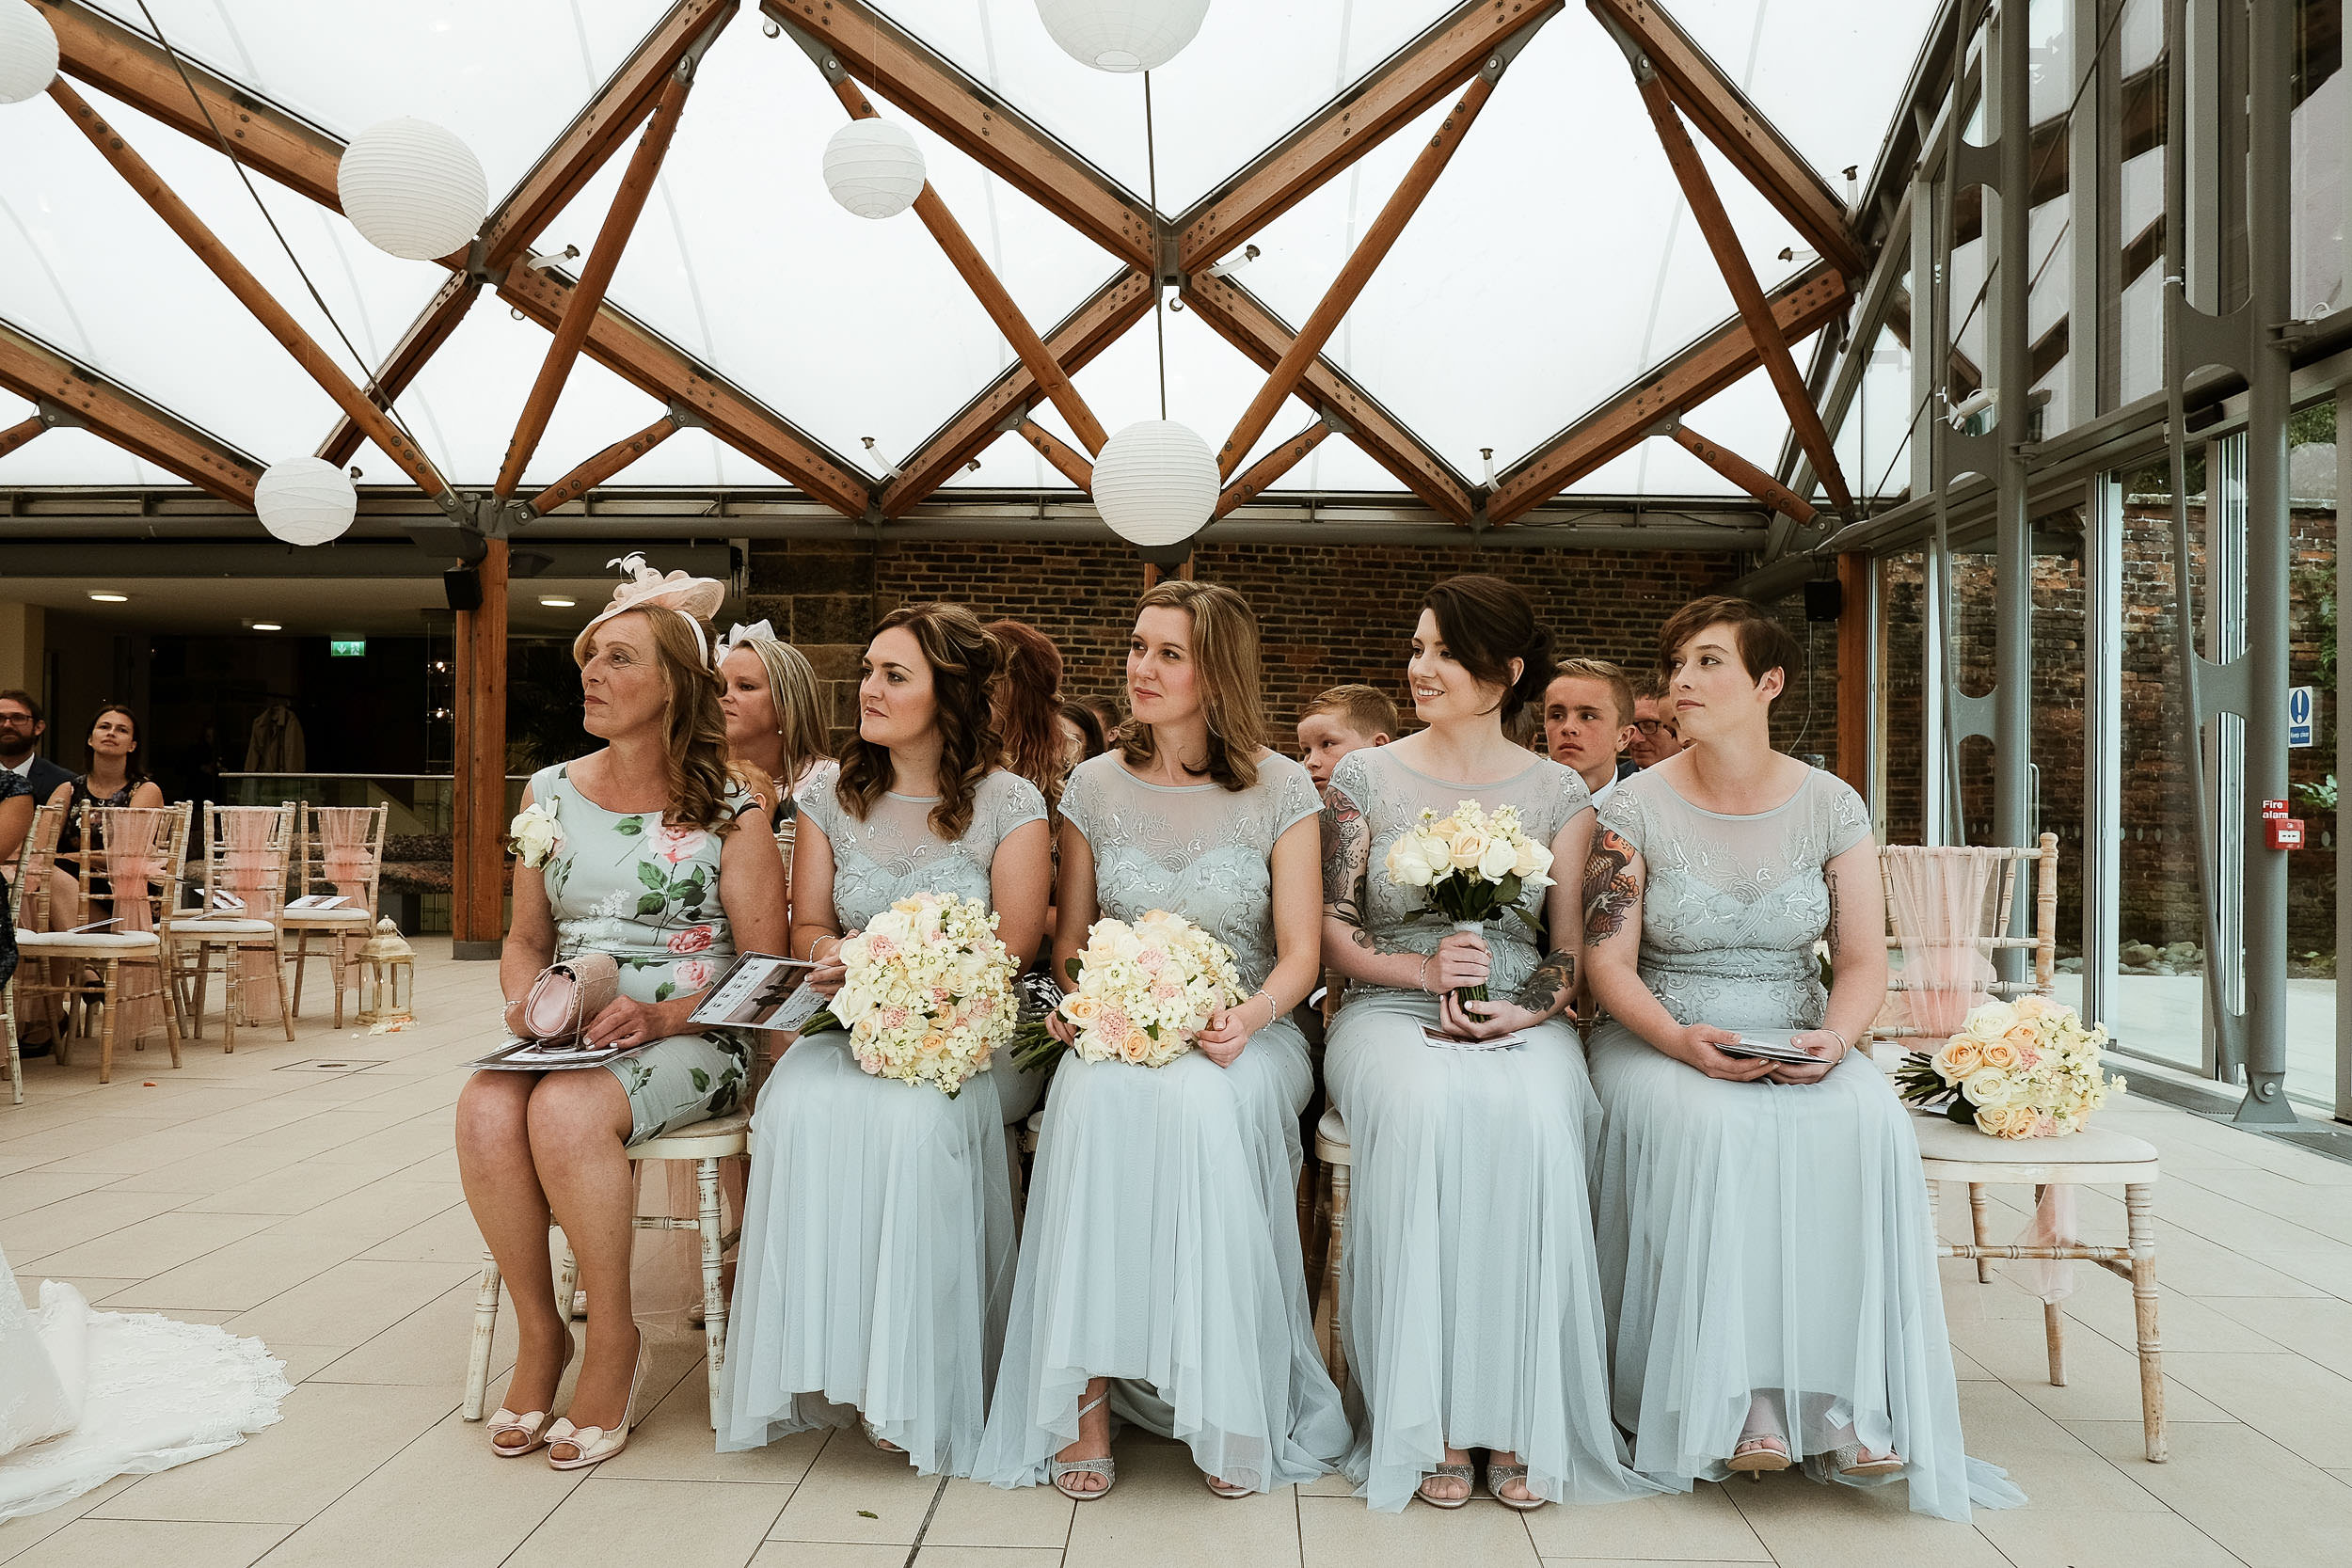 Bridesmaids look on during wedding ceremony